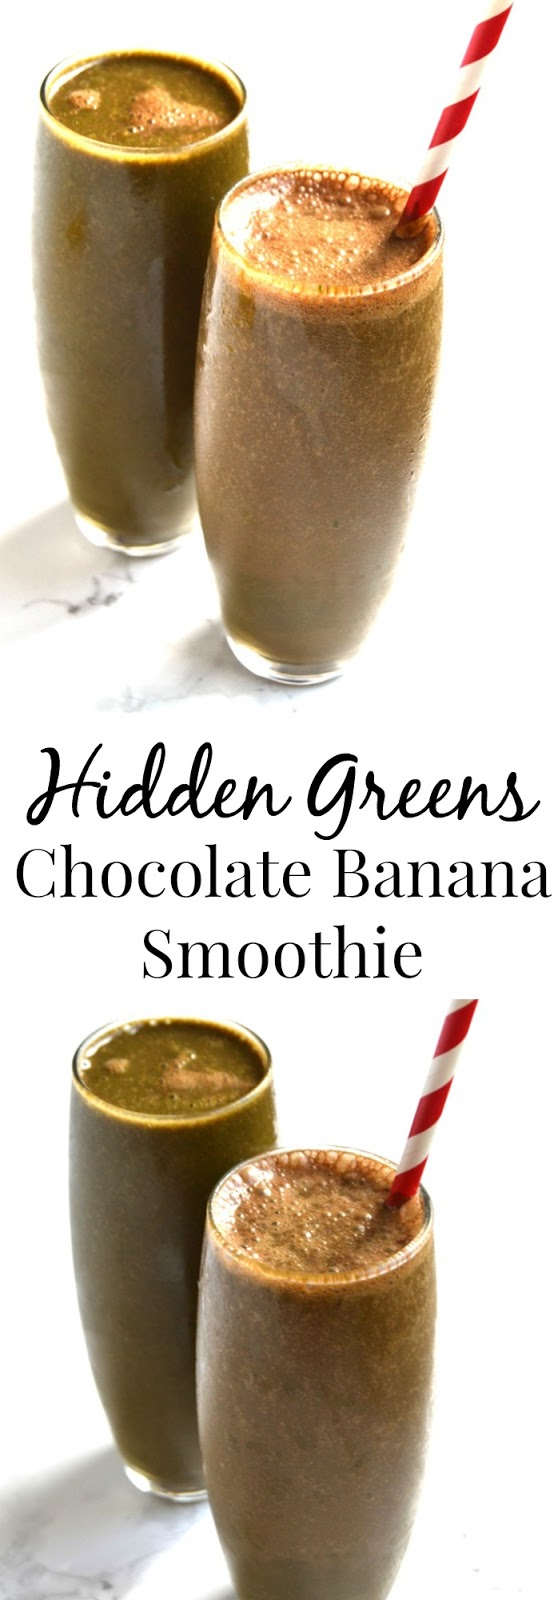 The Nutritionist Reviews: Hidden Greens Chocolate Banana Smoothie